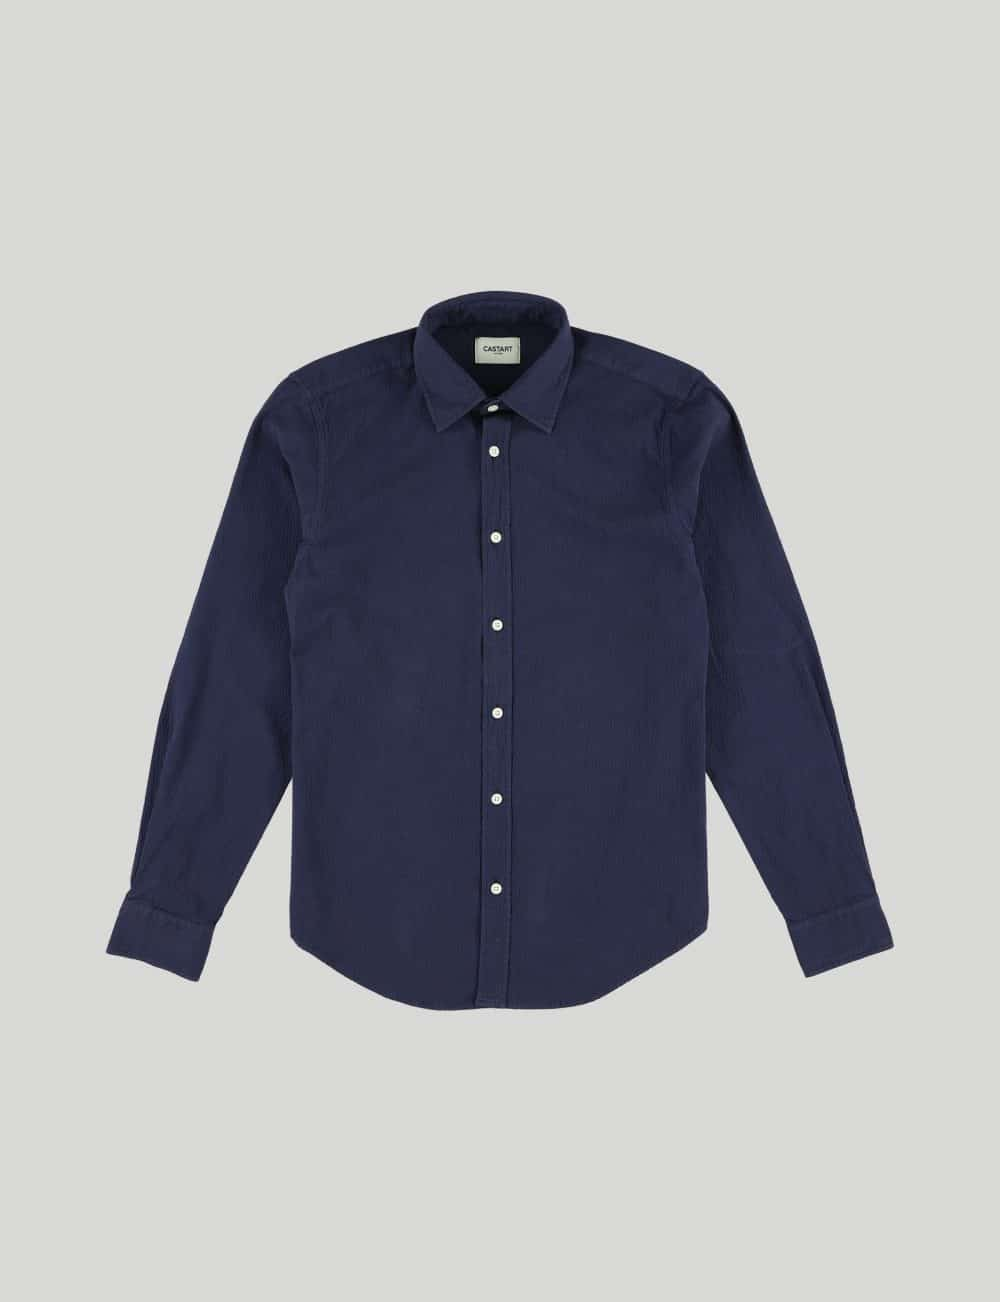 Castart - Tiger Tooth LS Shirt - Navy Blue